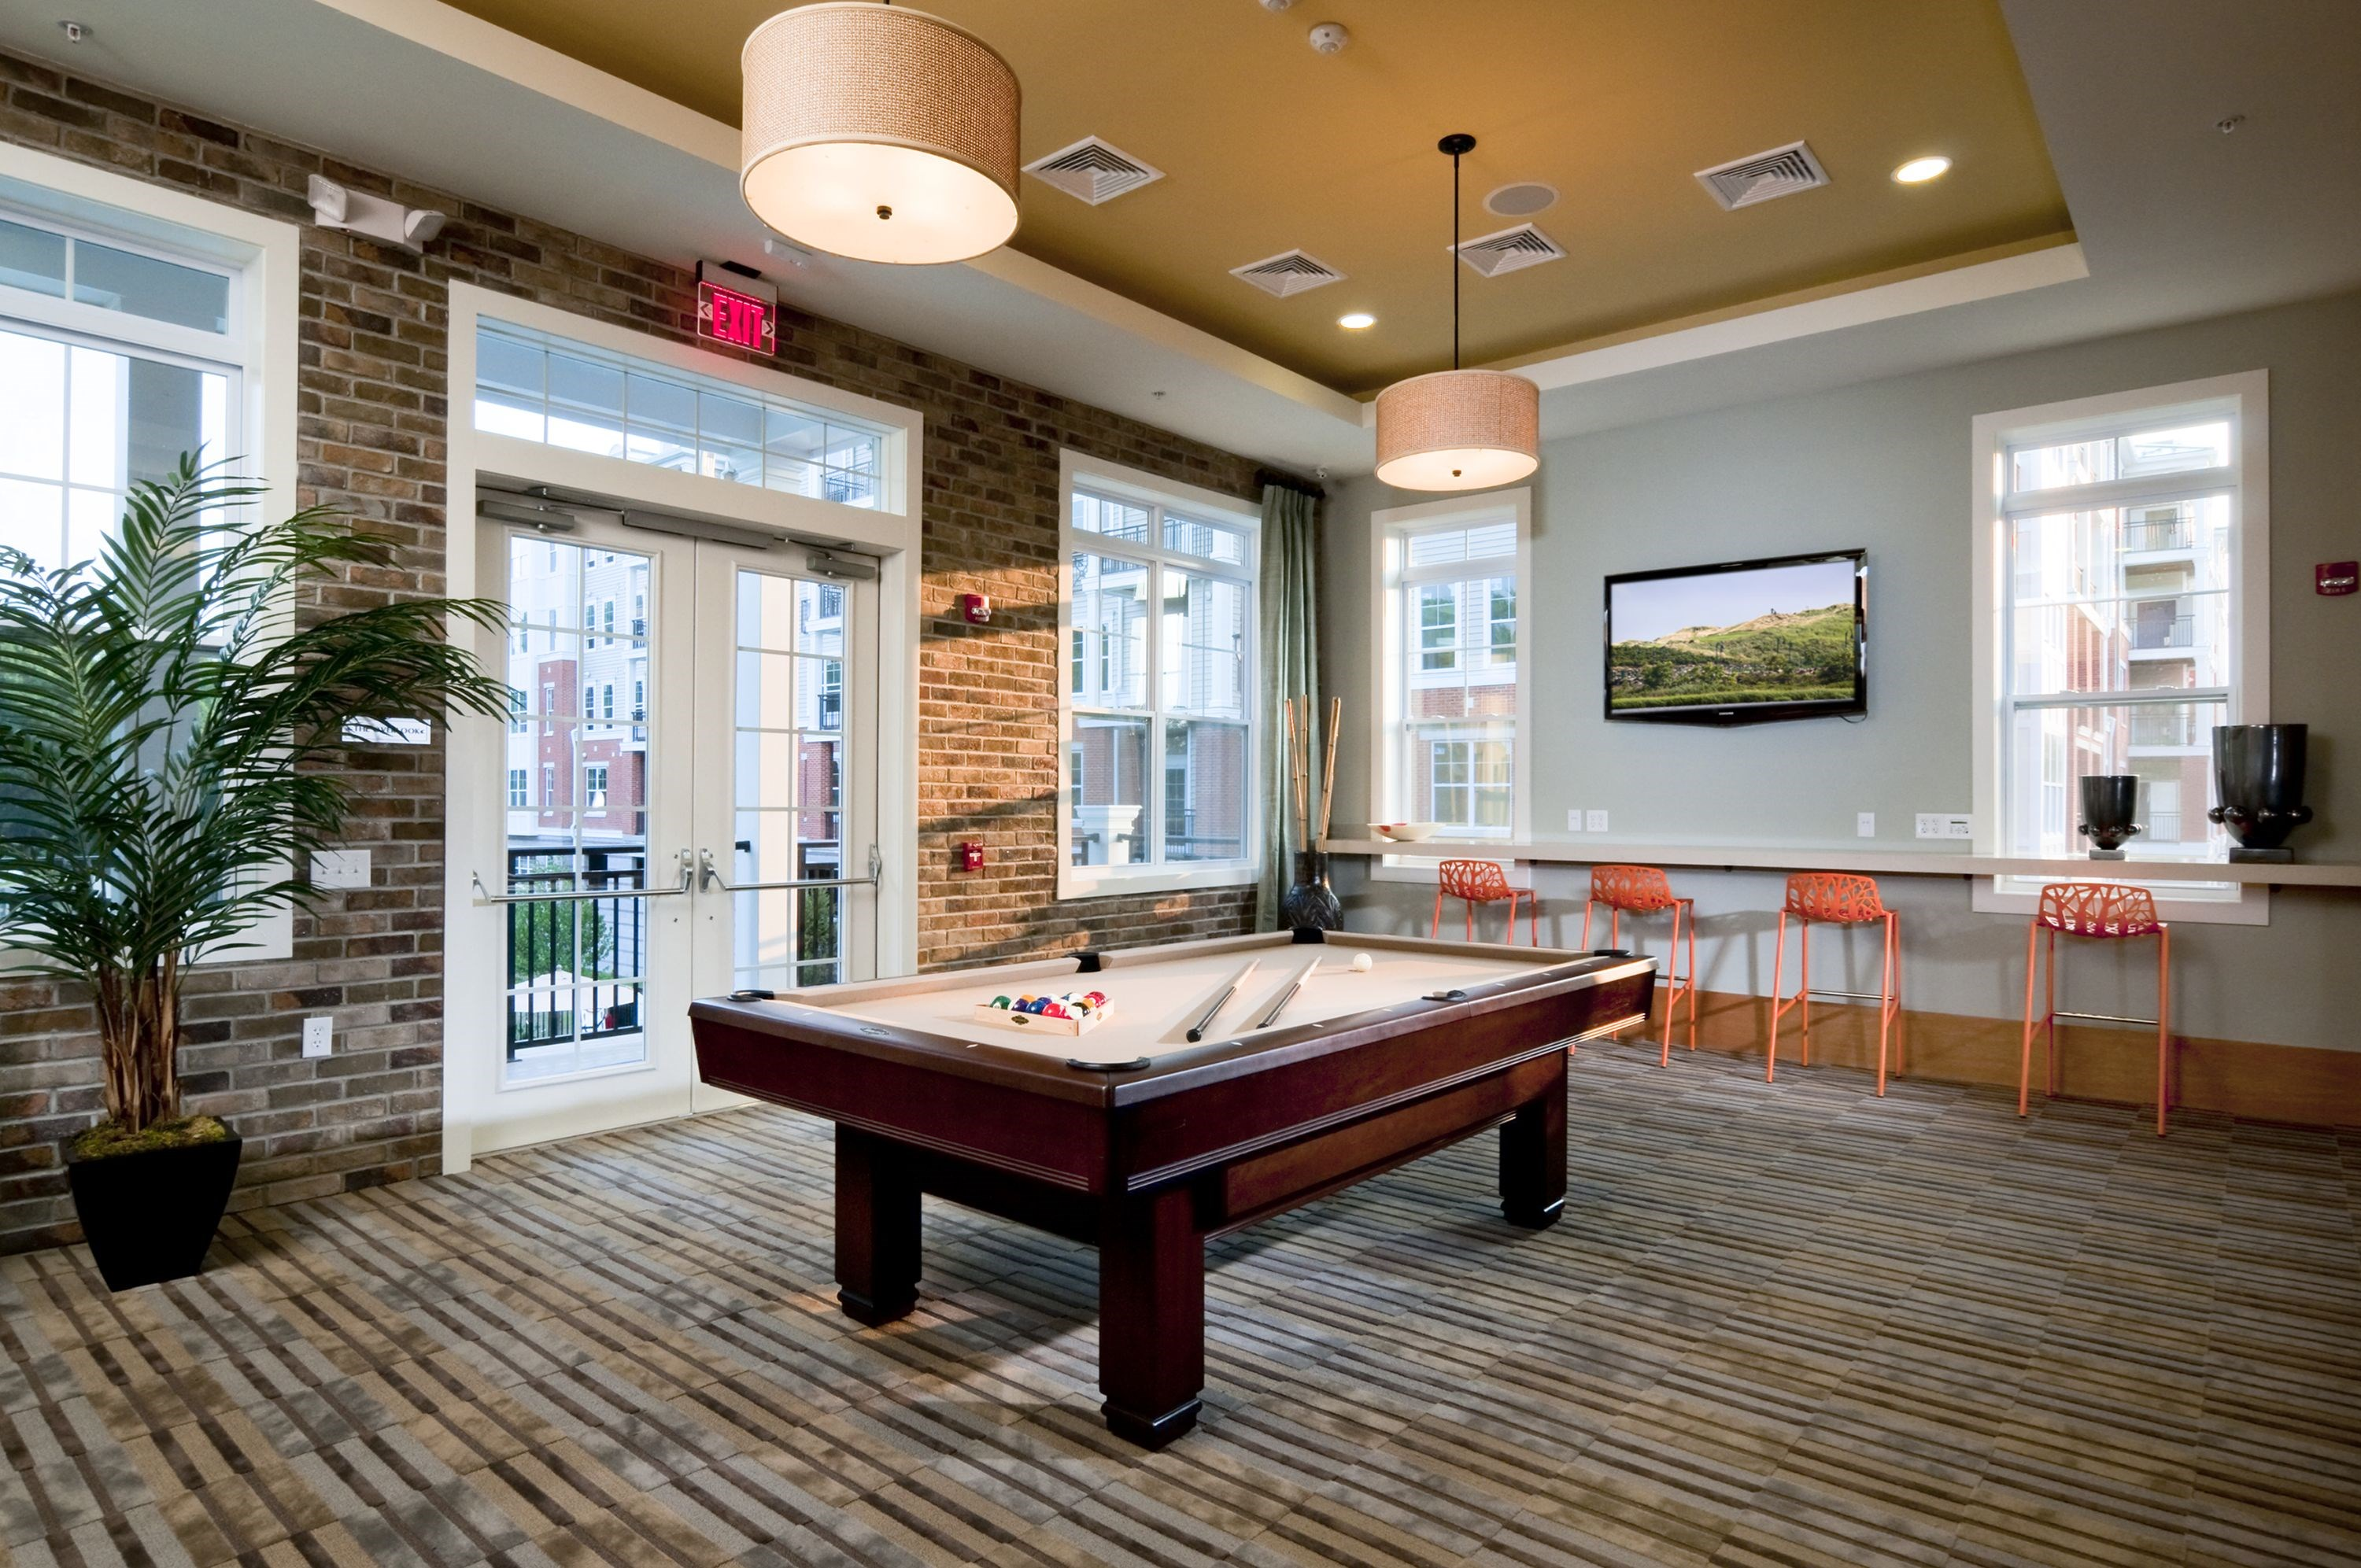 Billiards at The Reserve at Riverdale Apartments in Riverdale, NJ